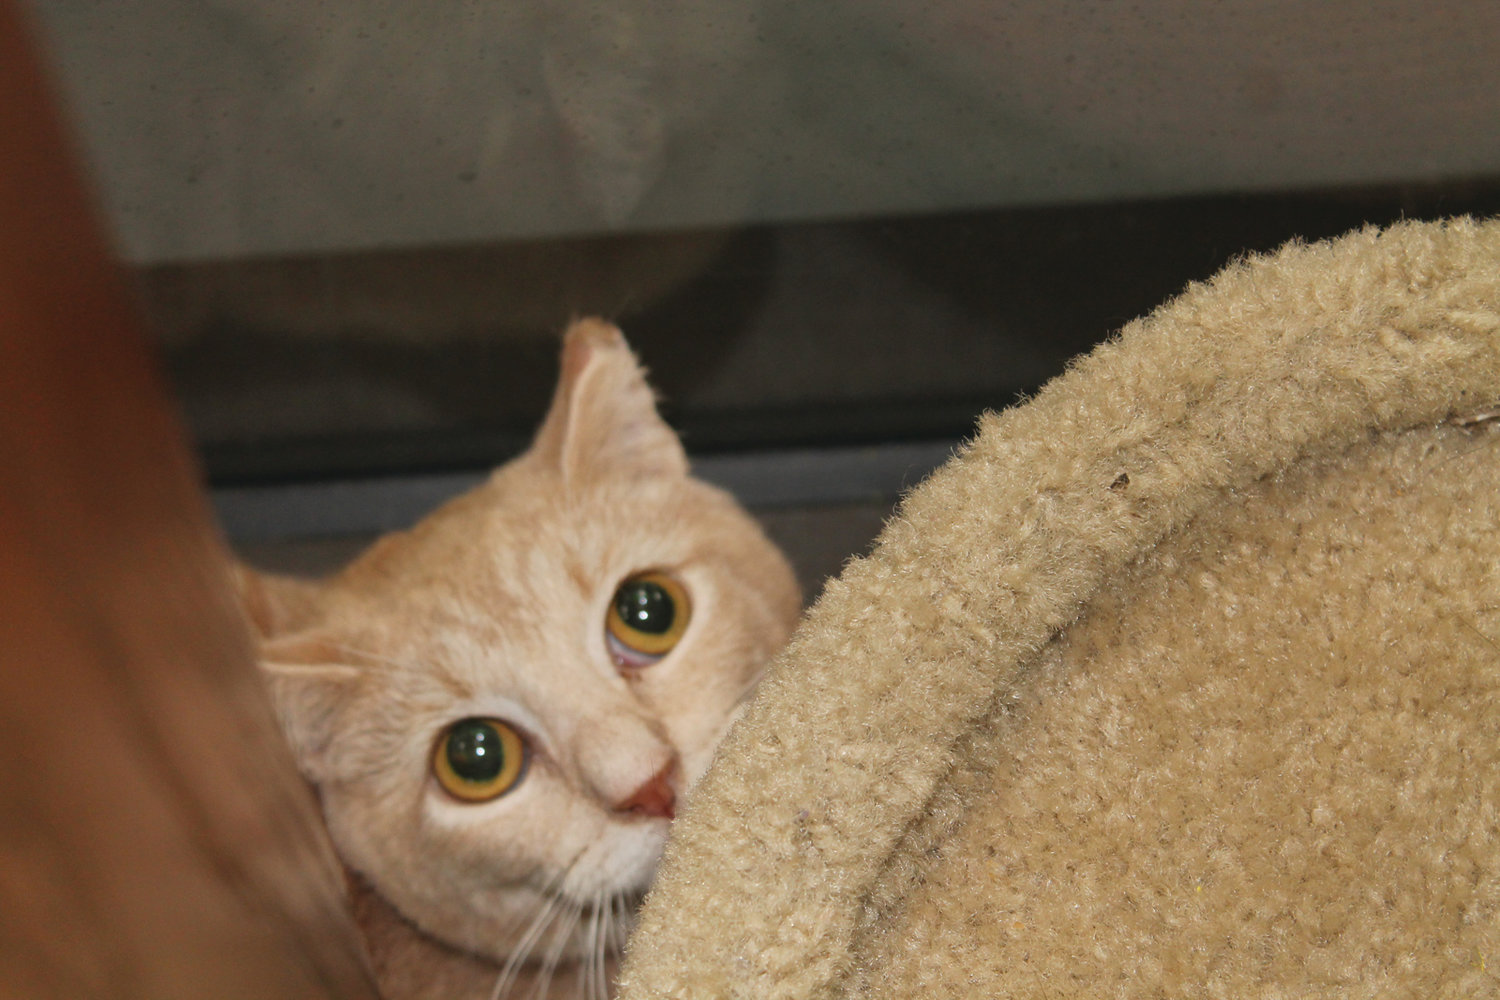 IN NEED OF A HOME: One of the more than 40 cats Pawswatch is seeking to place in a good home.